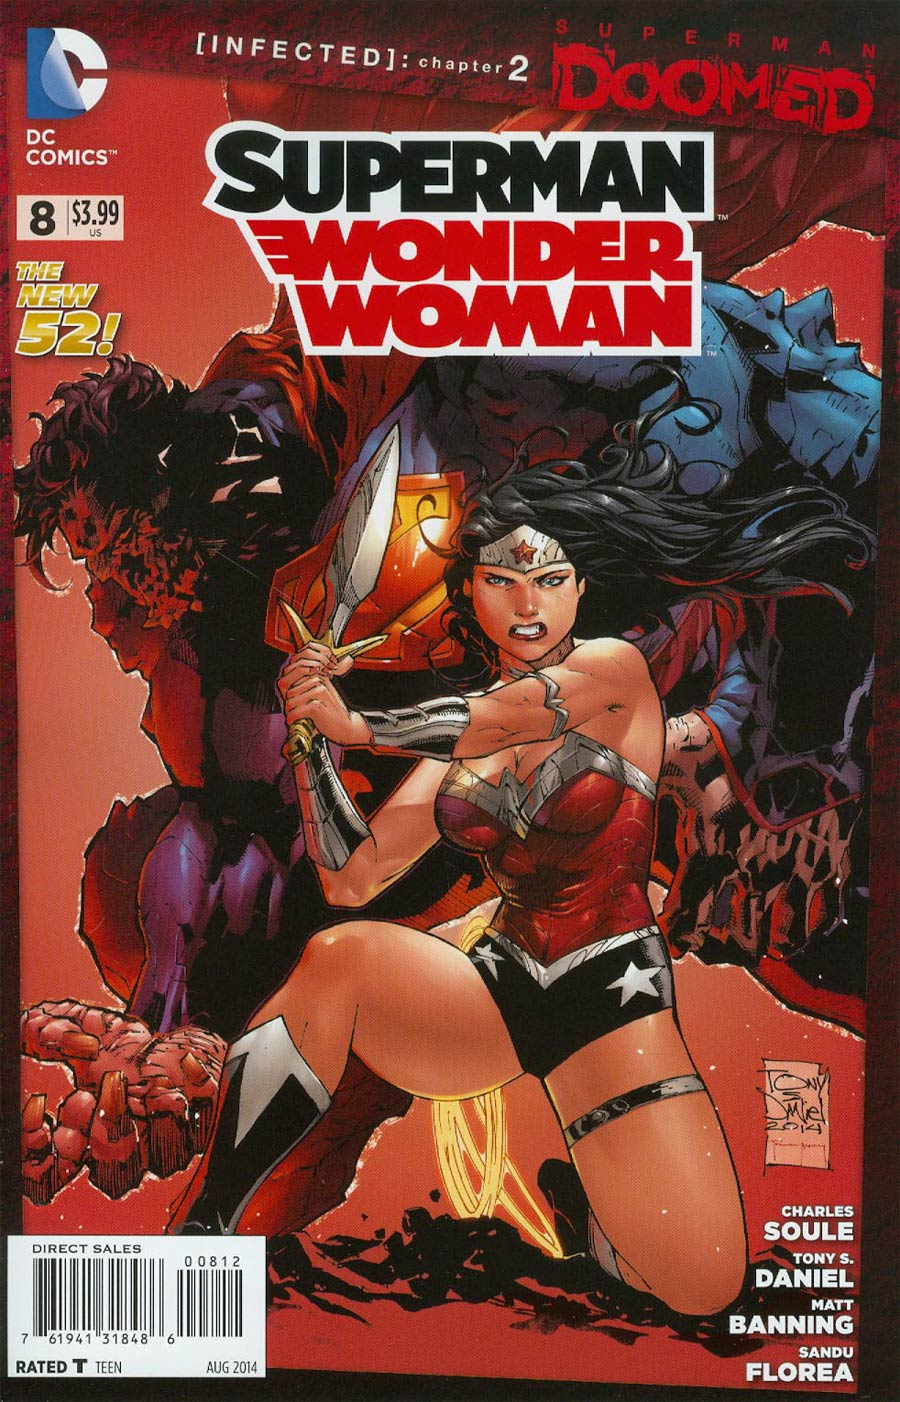 Superman Wonder Woman #8 Cover E 2nd Ptg Tony S Daniel Variant Cover (Superman Doomed Tie-In)